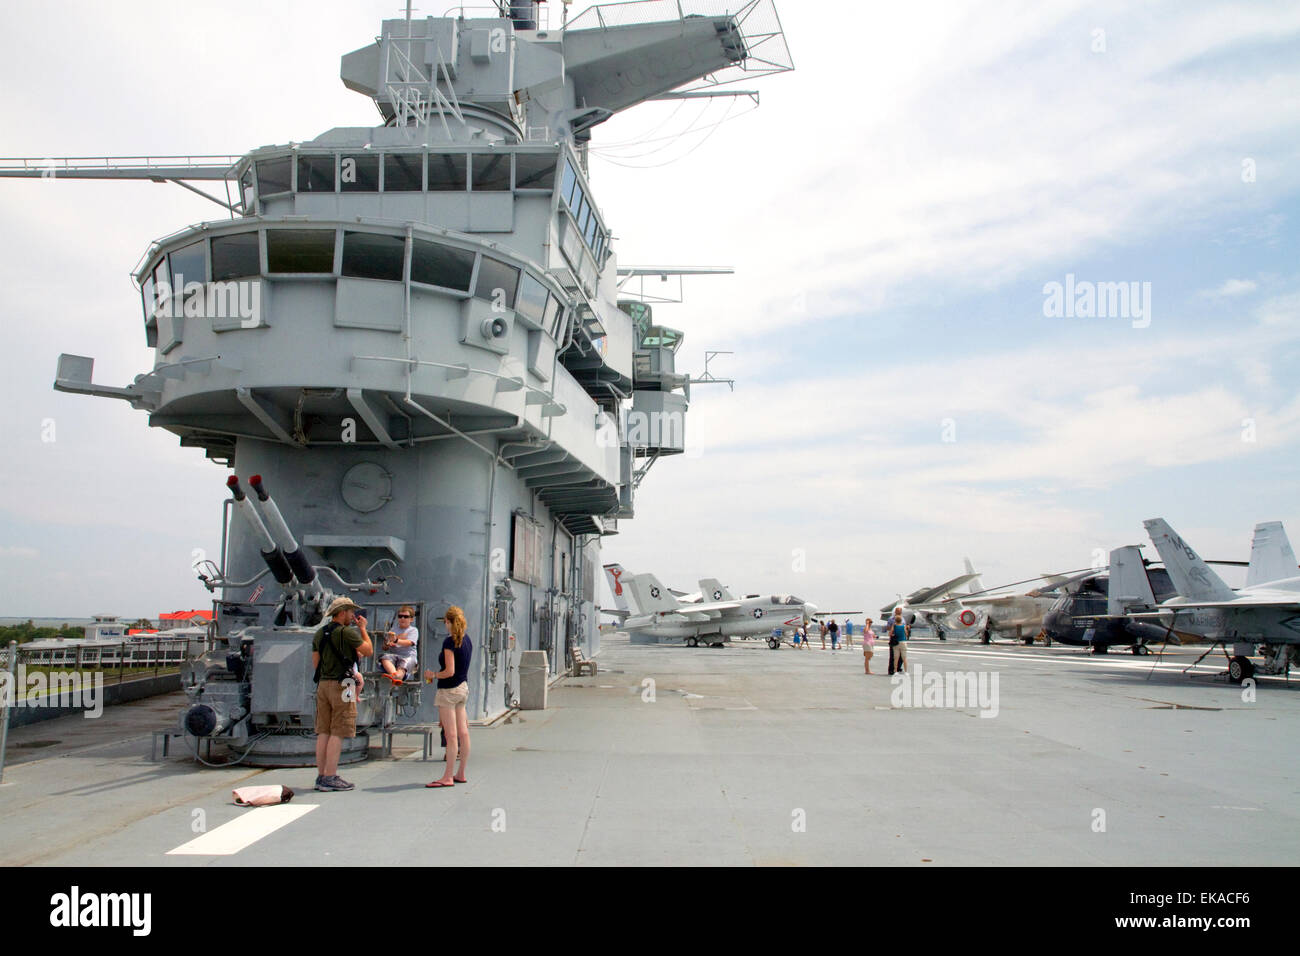 the uss yorktown aircraft carrier at patriots point naval